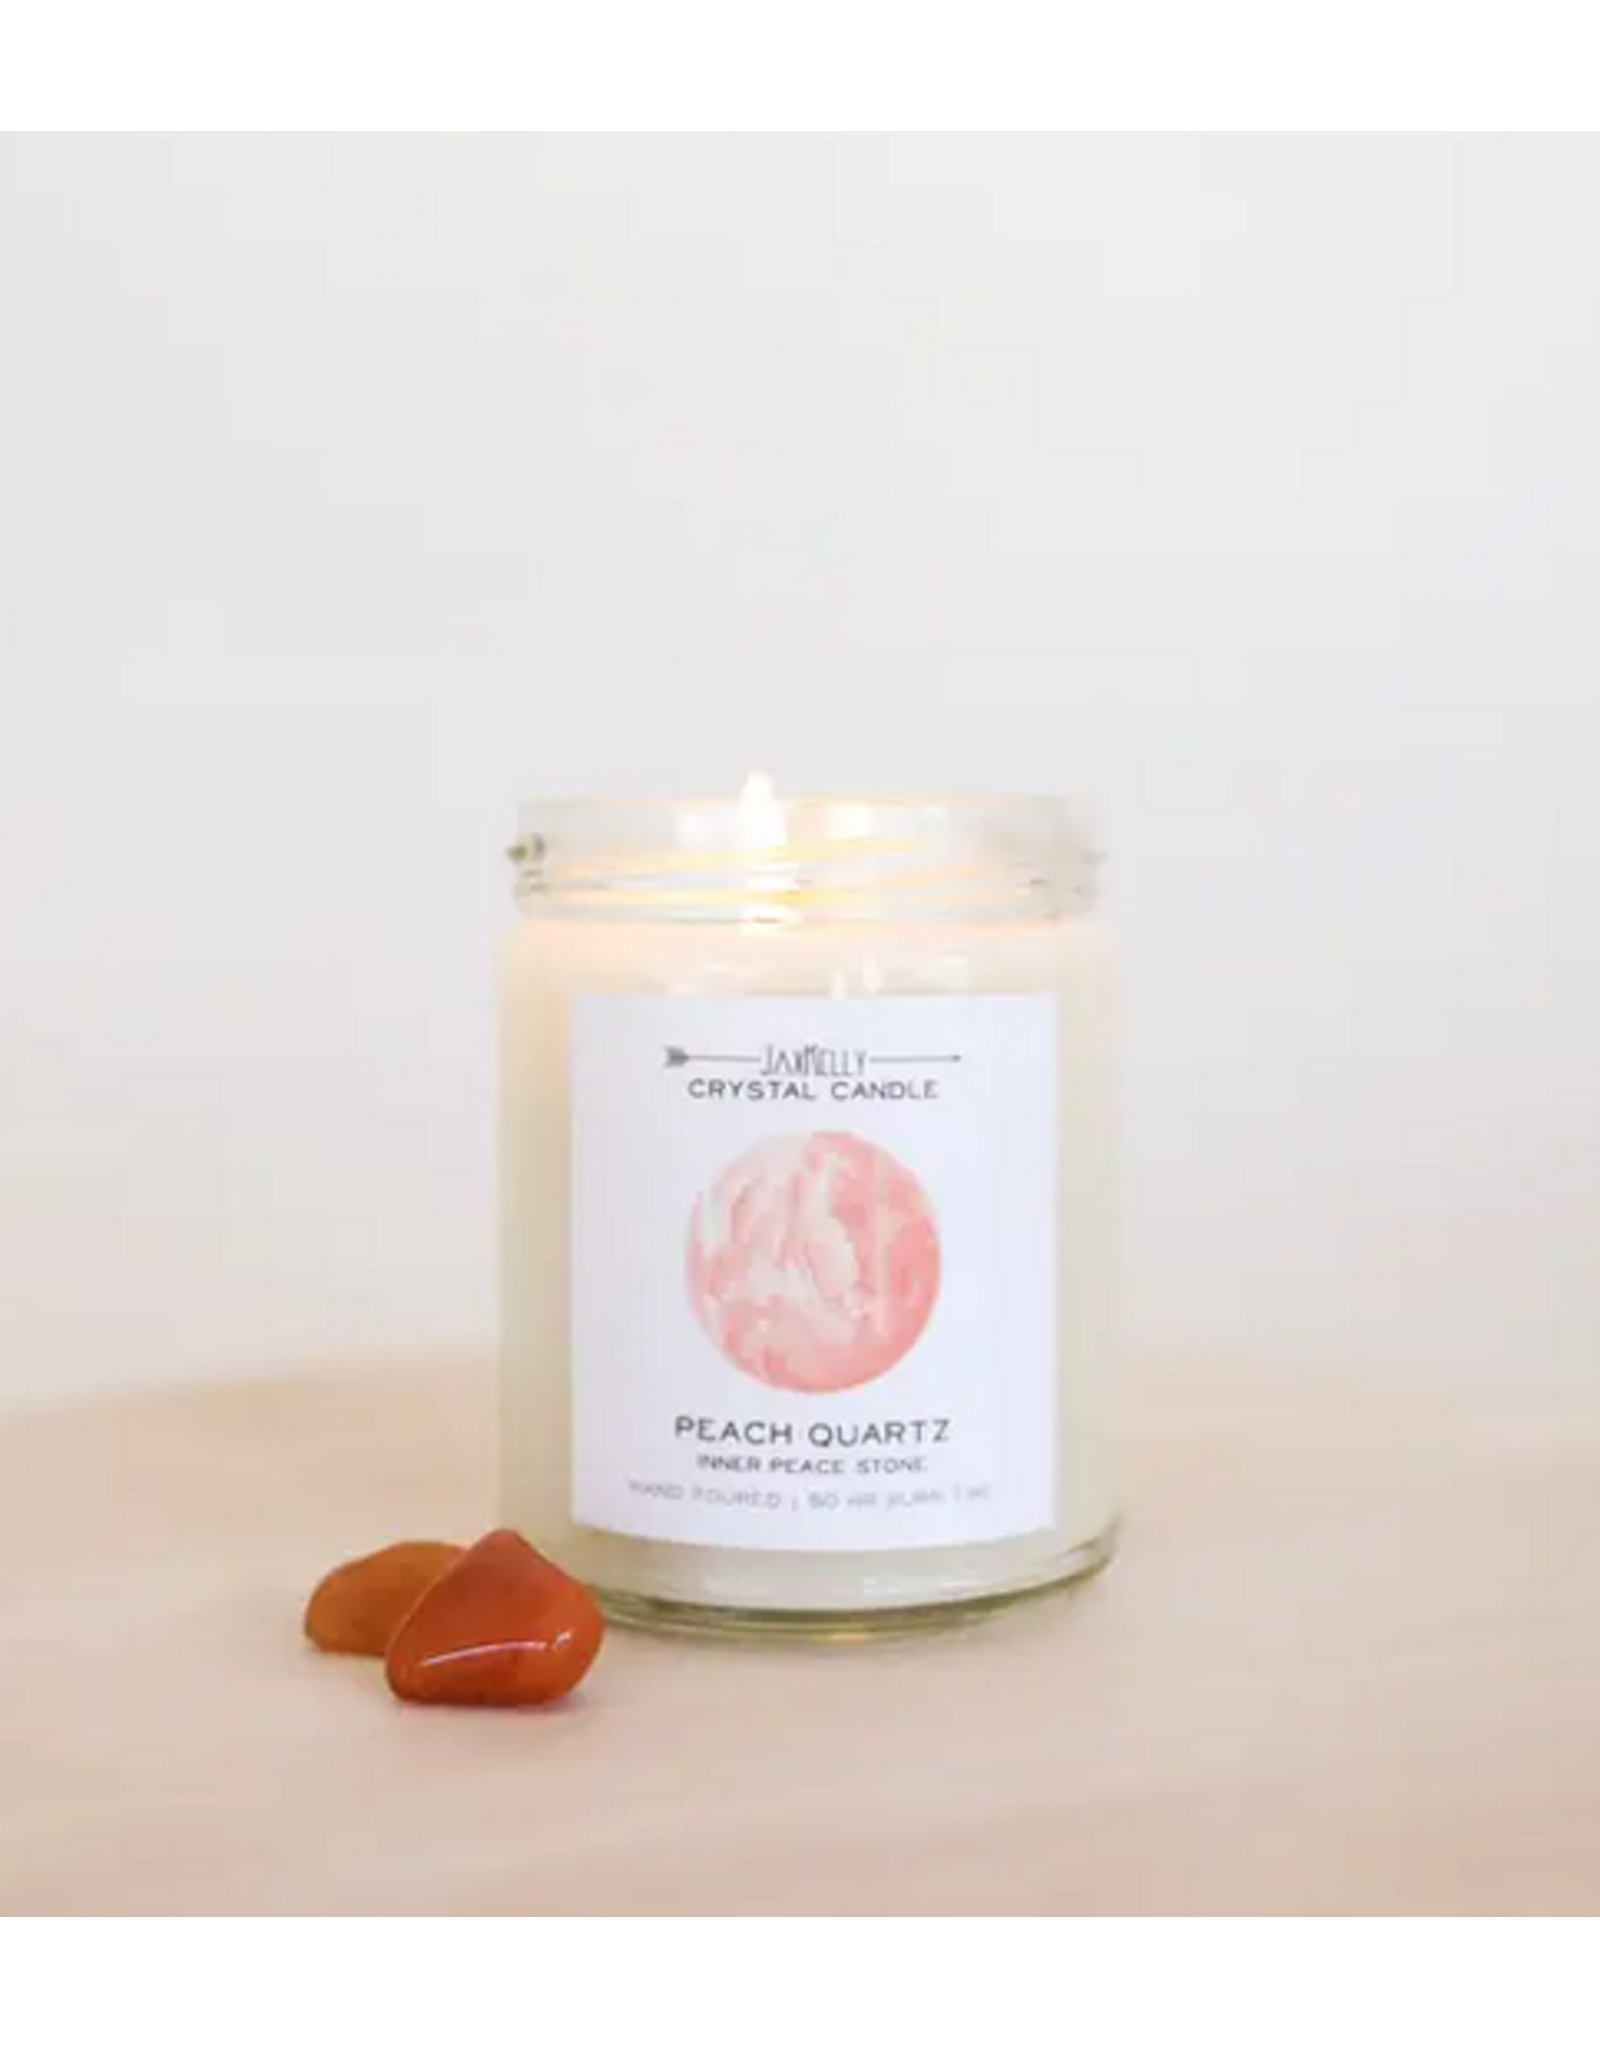 JaxKelly 9 oz. Peach Quartz Crystal Candle